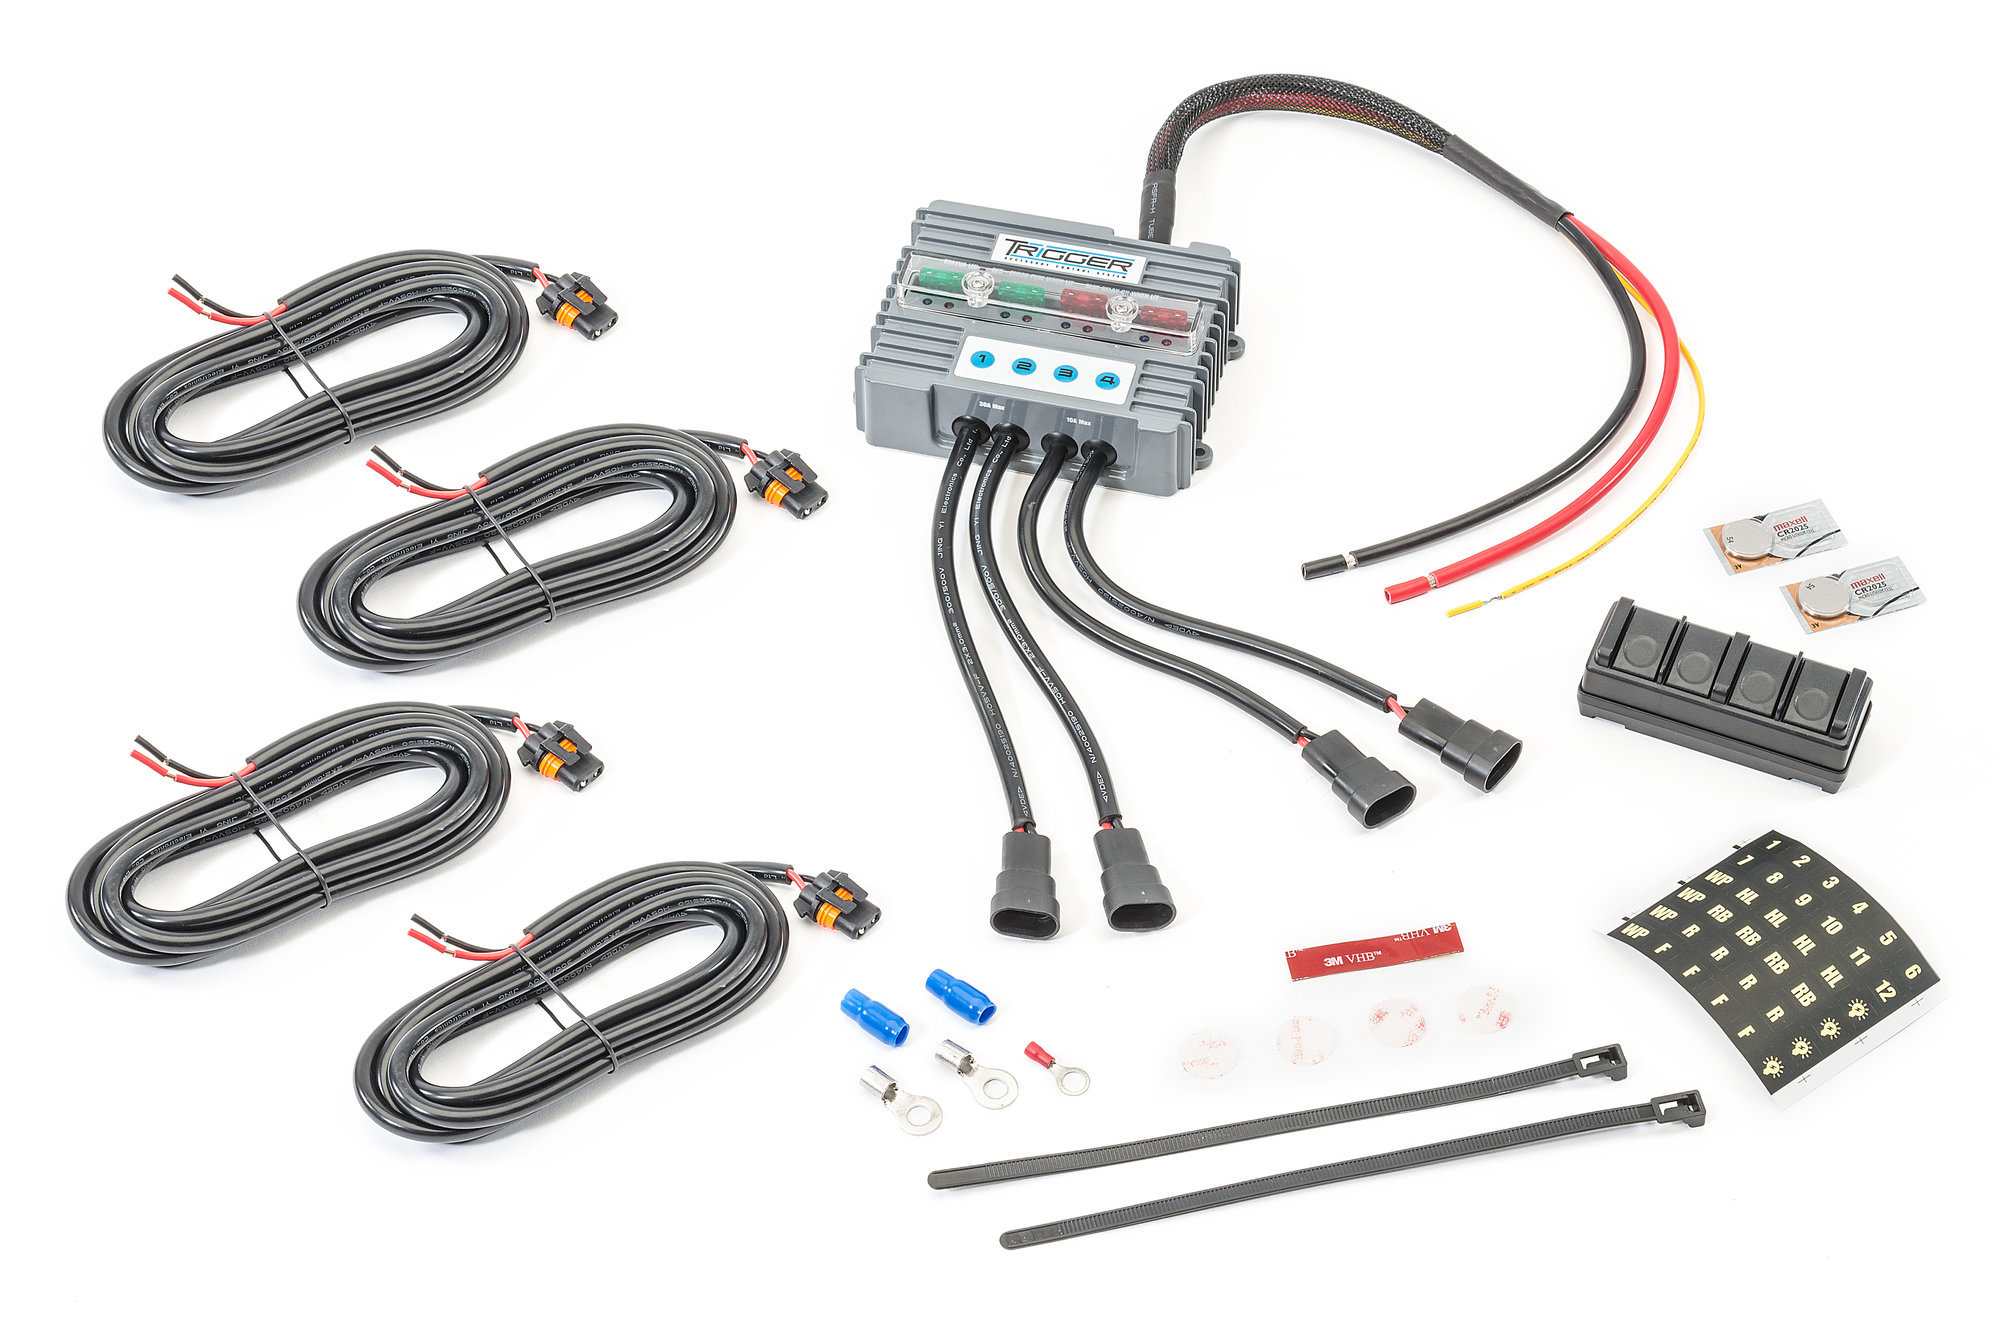 Trigger Complete Switching System With Overhead Switch